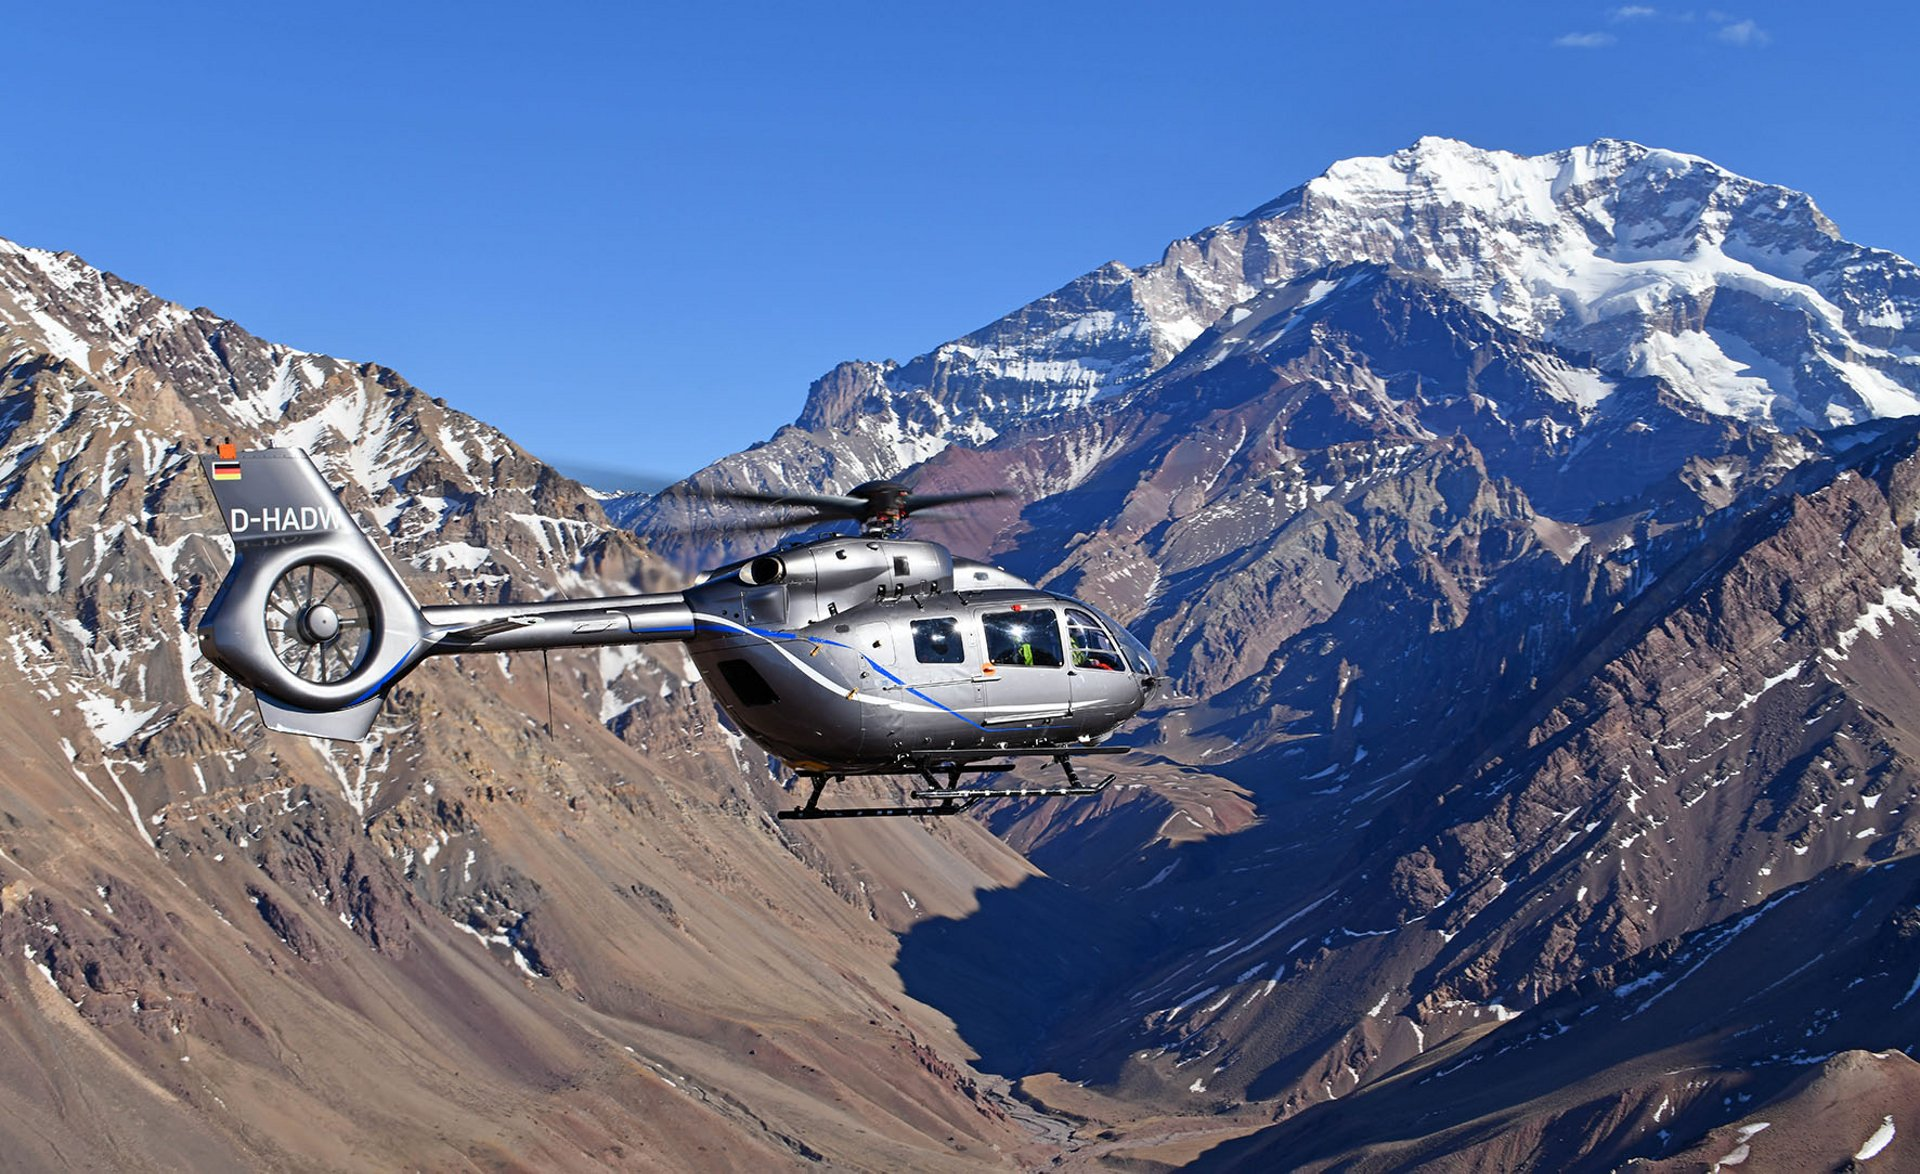 The H145 in flight, during a trip in which it landed on the Aconcagua, the highest mountain in the Southern Hemisphere, culminating at 6,962 metres (22,840 feet). This is the first time a twin-engine